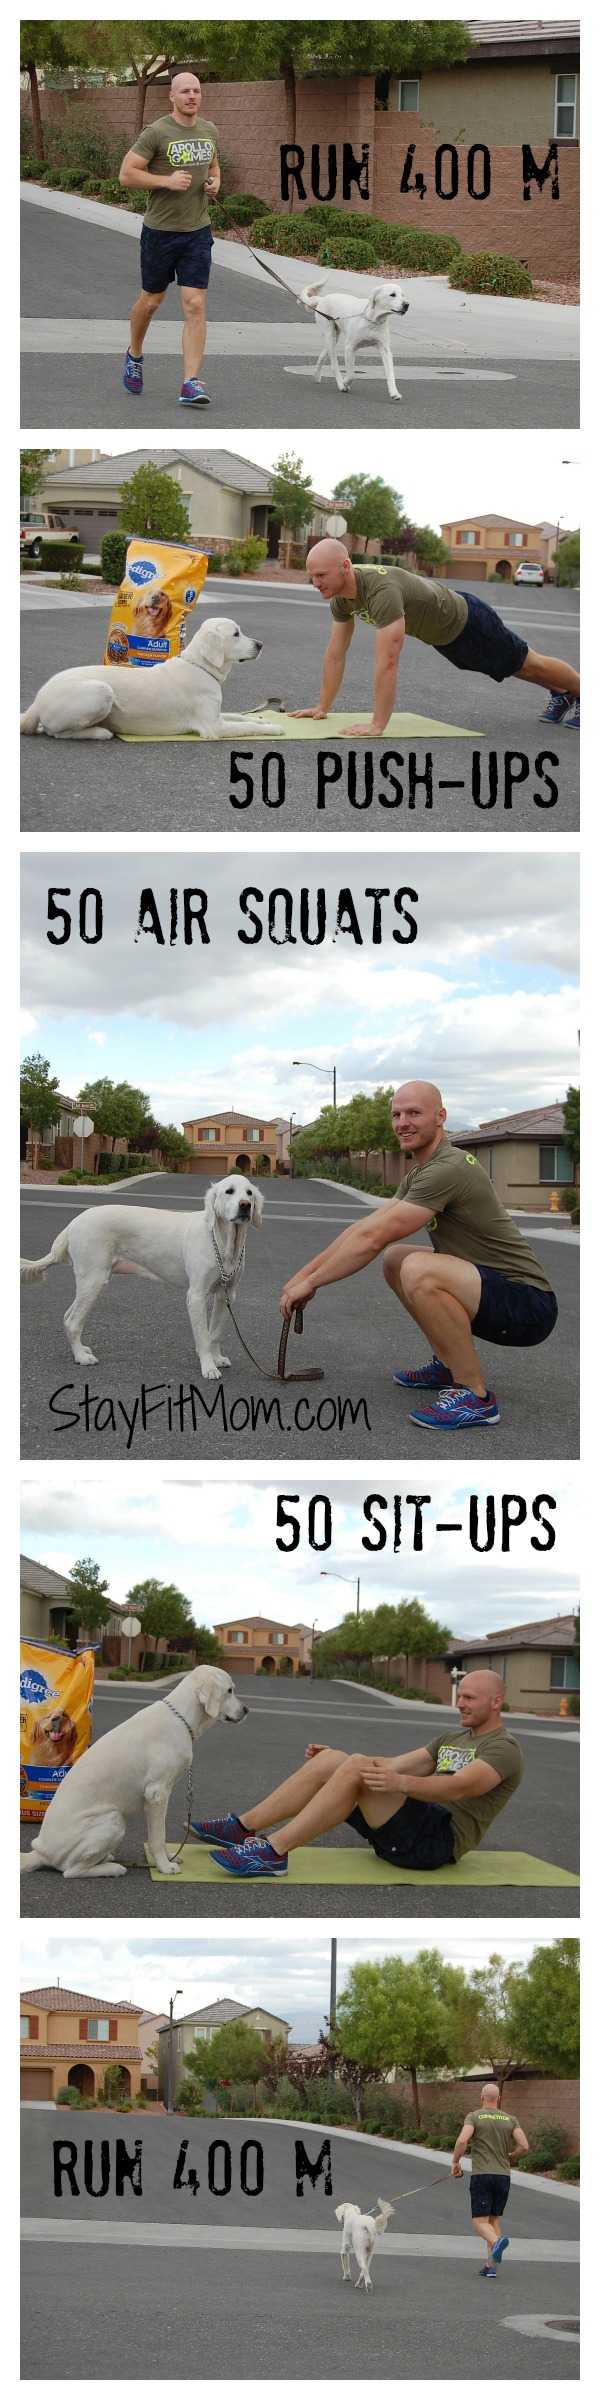 CrossFit workout with the family dog from StayFitMom.com!